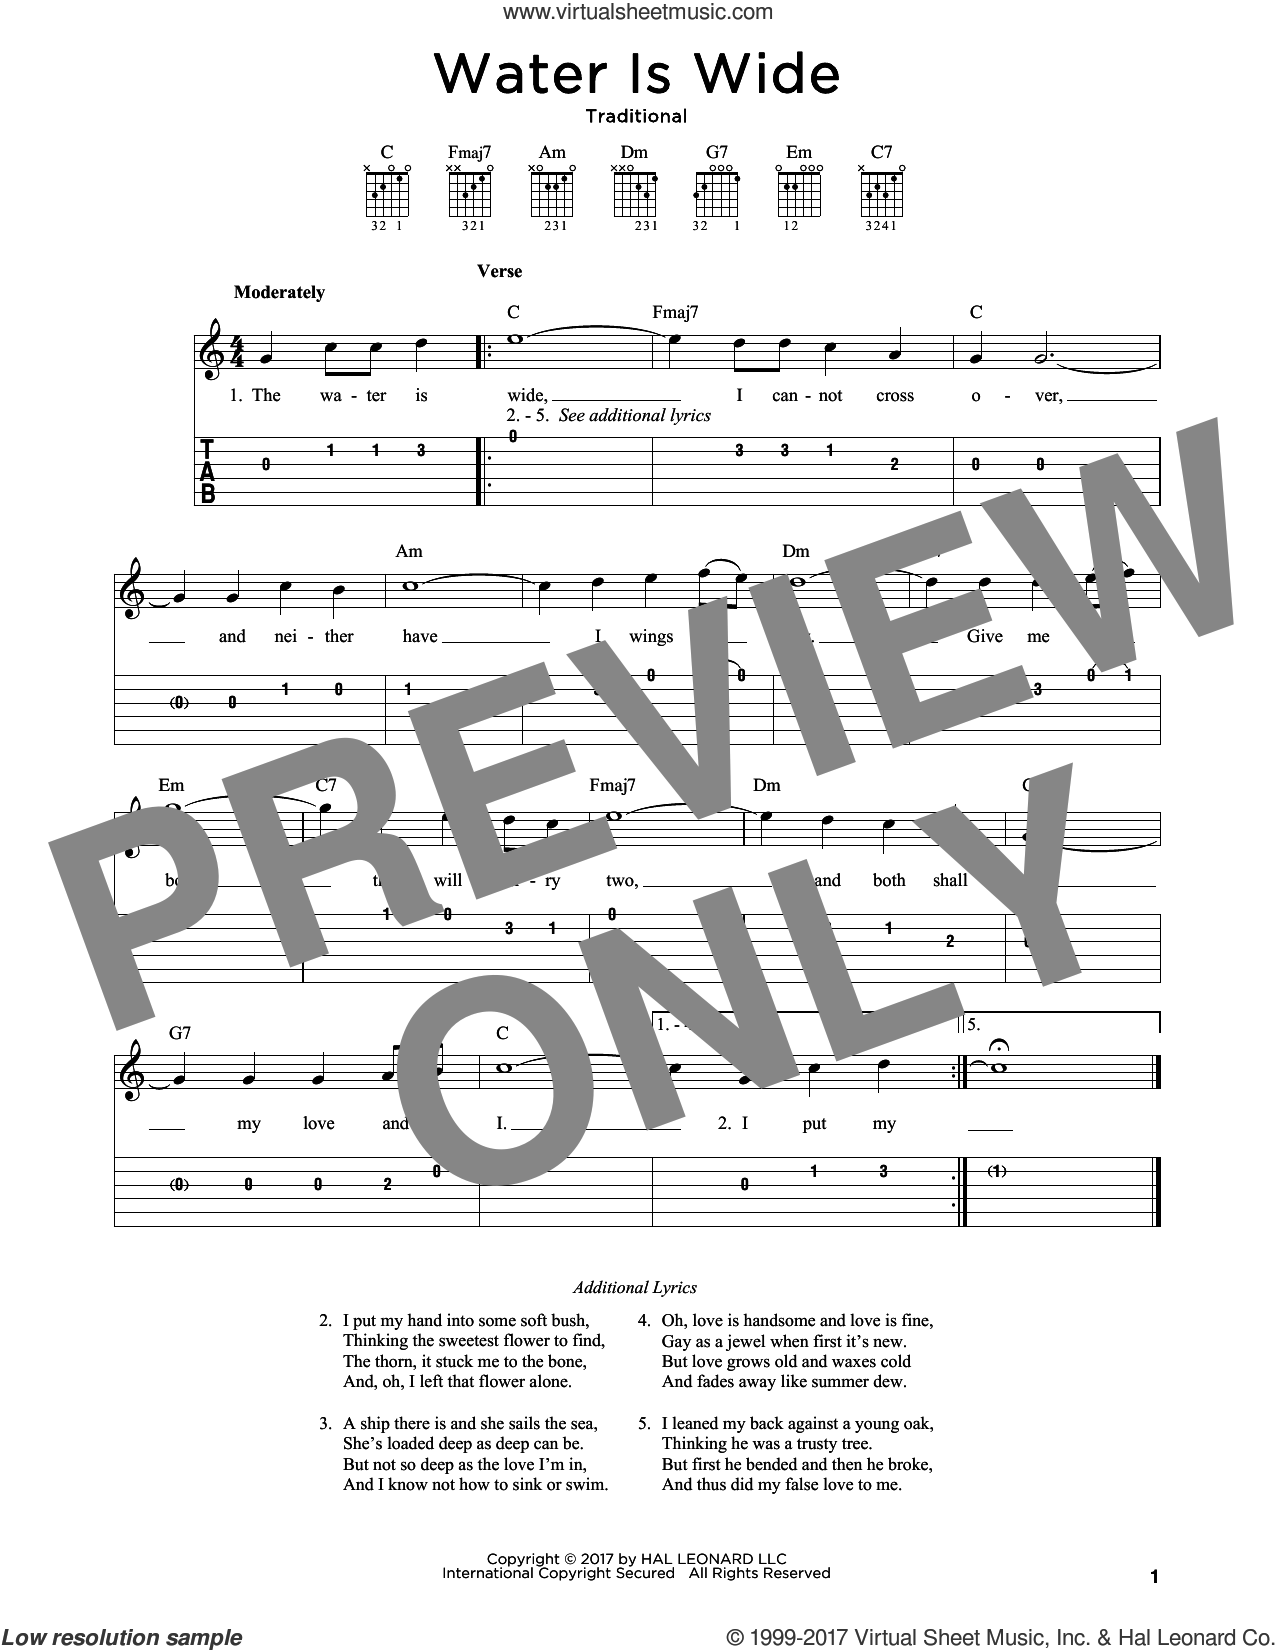 Water Is Wide sheet music for guitar solo, intermediate skill level